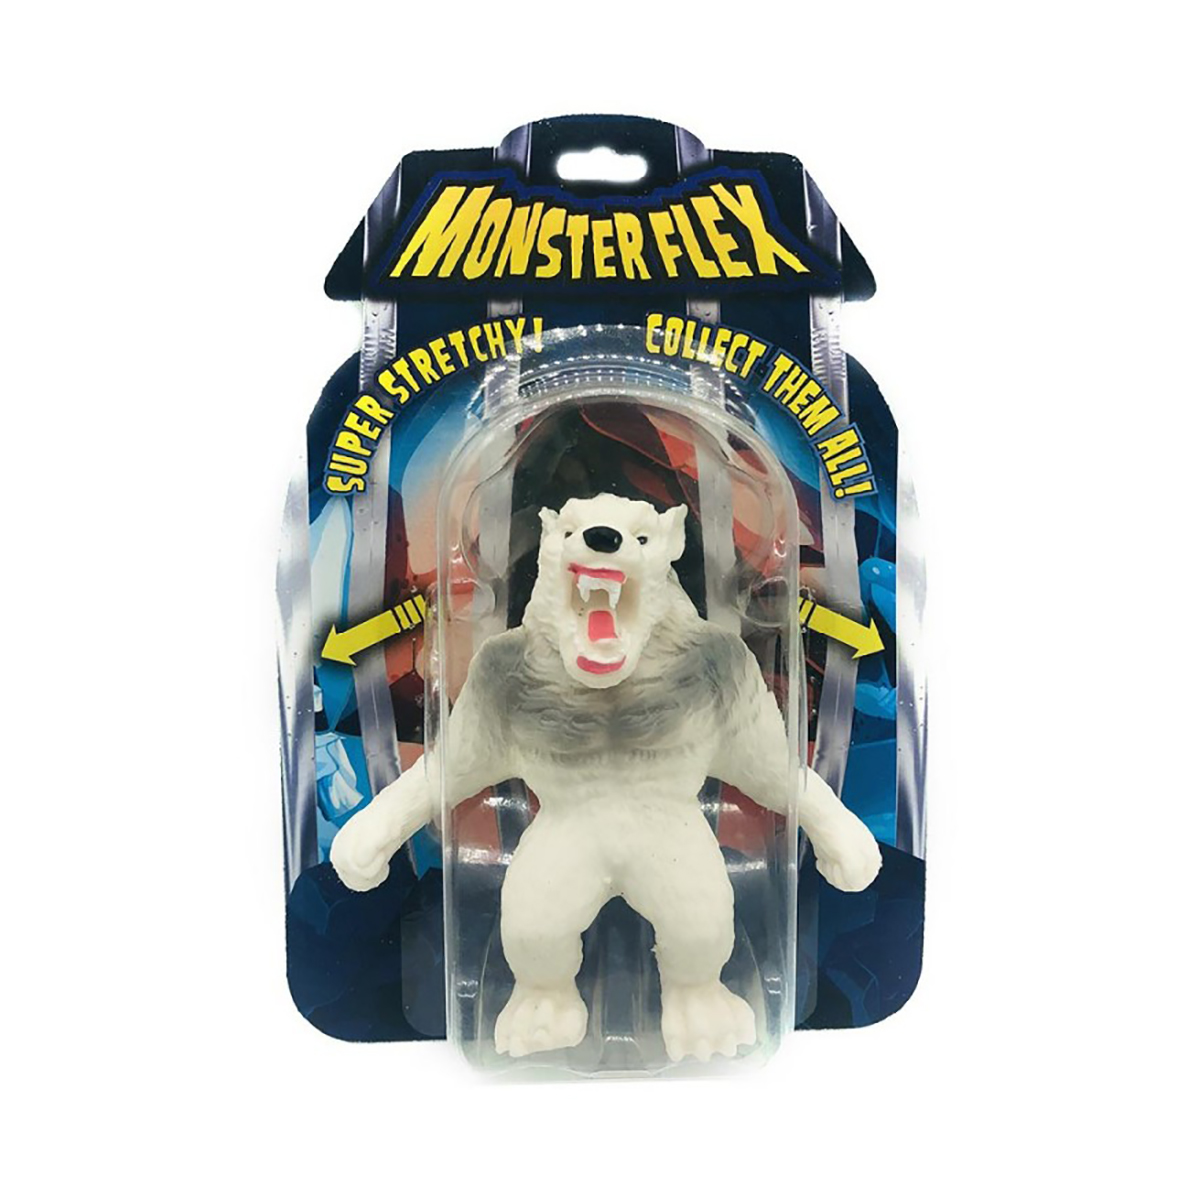 Figurina flexibila Monster Flex, Artic Werewolf